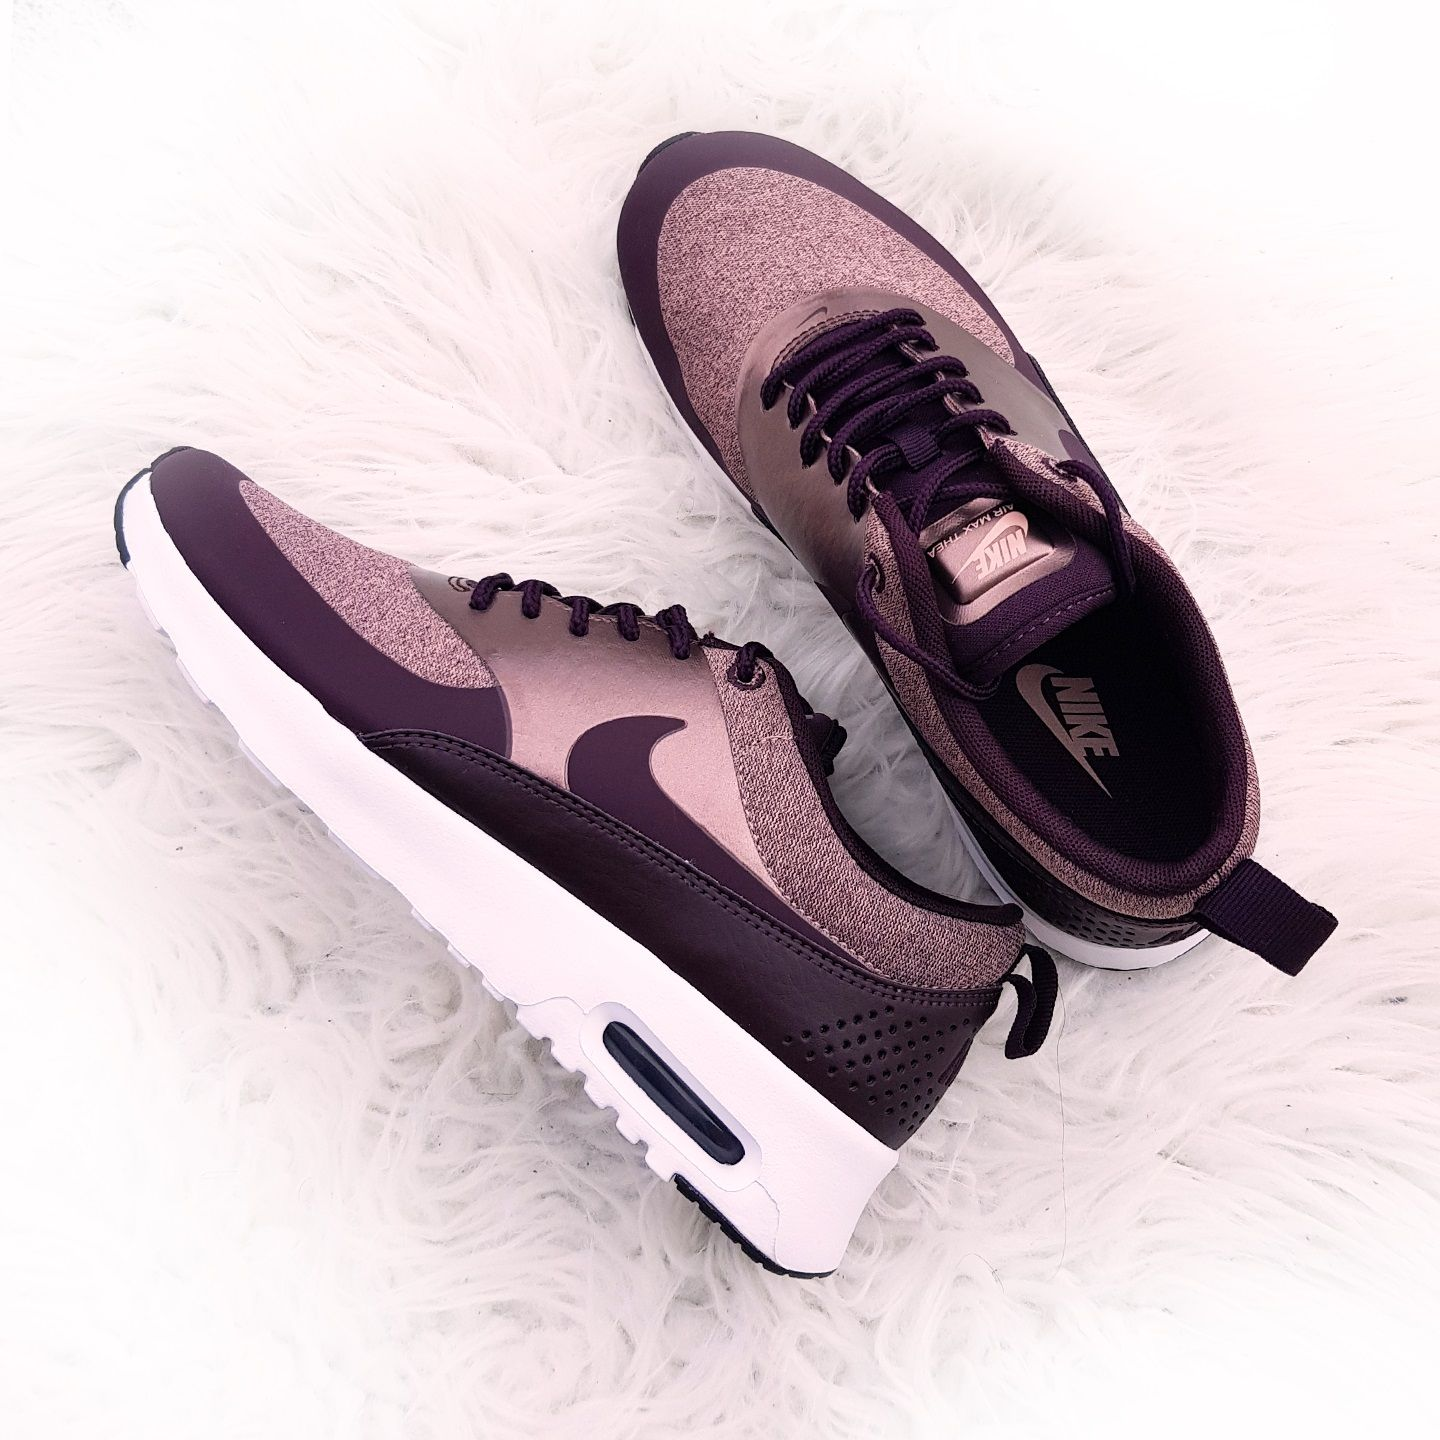 60ccdc4a089c Nike Air Max Thea Knit - Port Wine Particle Pink Schwarz Metallic Mahogany